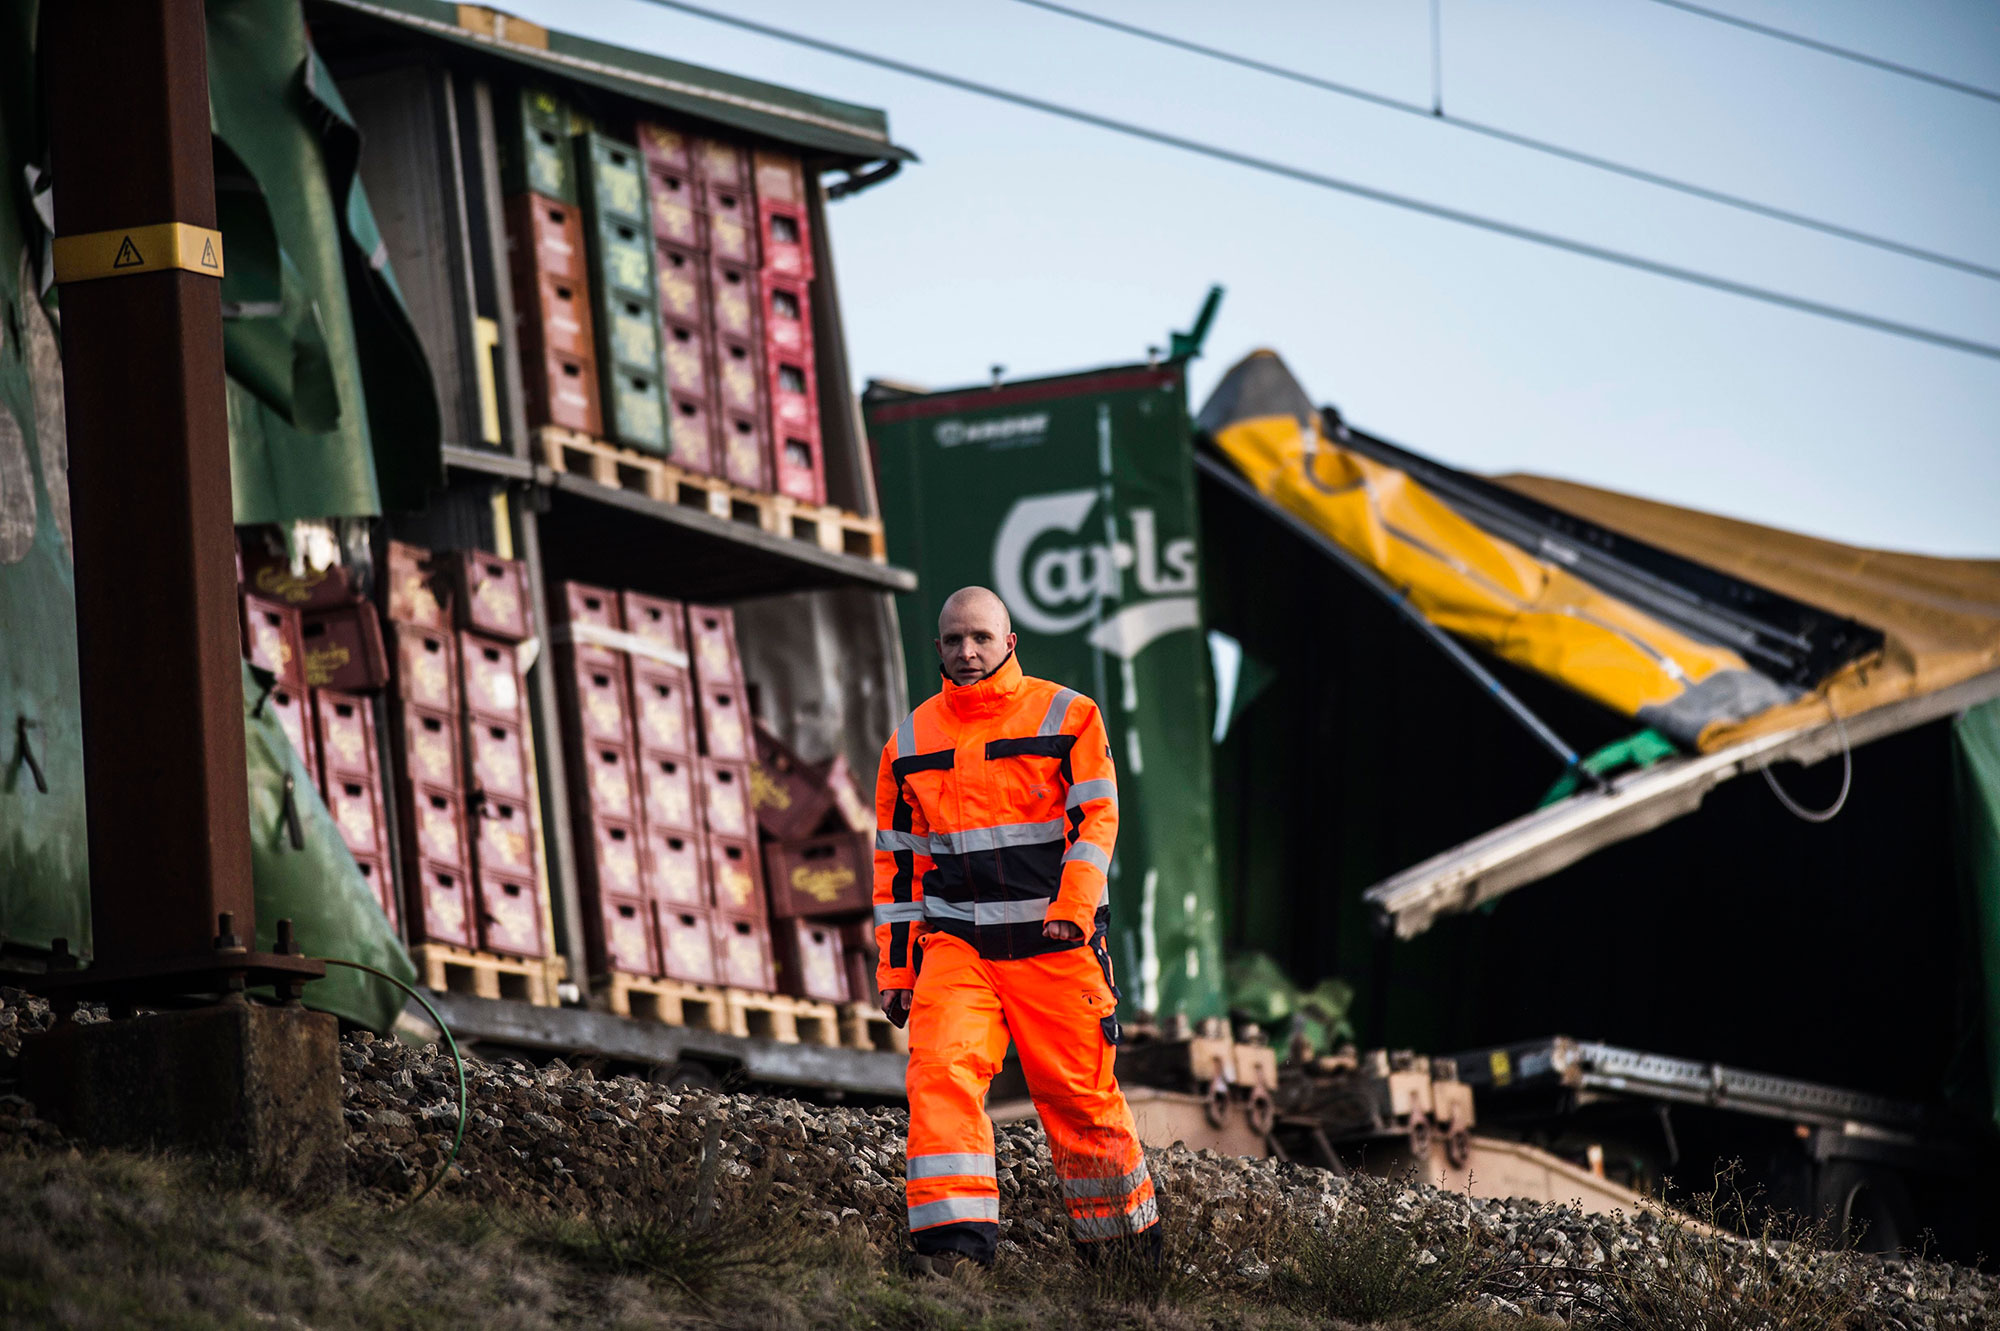 <div class='meta'><div class='origin-logo' data-origin='none'></div><span class='caption-text' data-credit='Tim Kildeborg Jensen / Ritzau Scanpix / AFP'>A staff member walks past damaged containers on a cargo train on the Great Belt Bridge after a railway accident on January 2, 2019 in Nyborg, Denmark.</span></div>